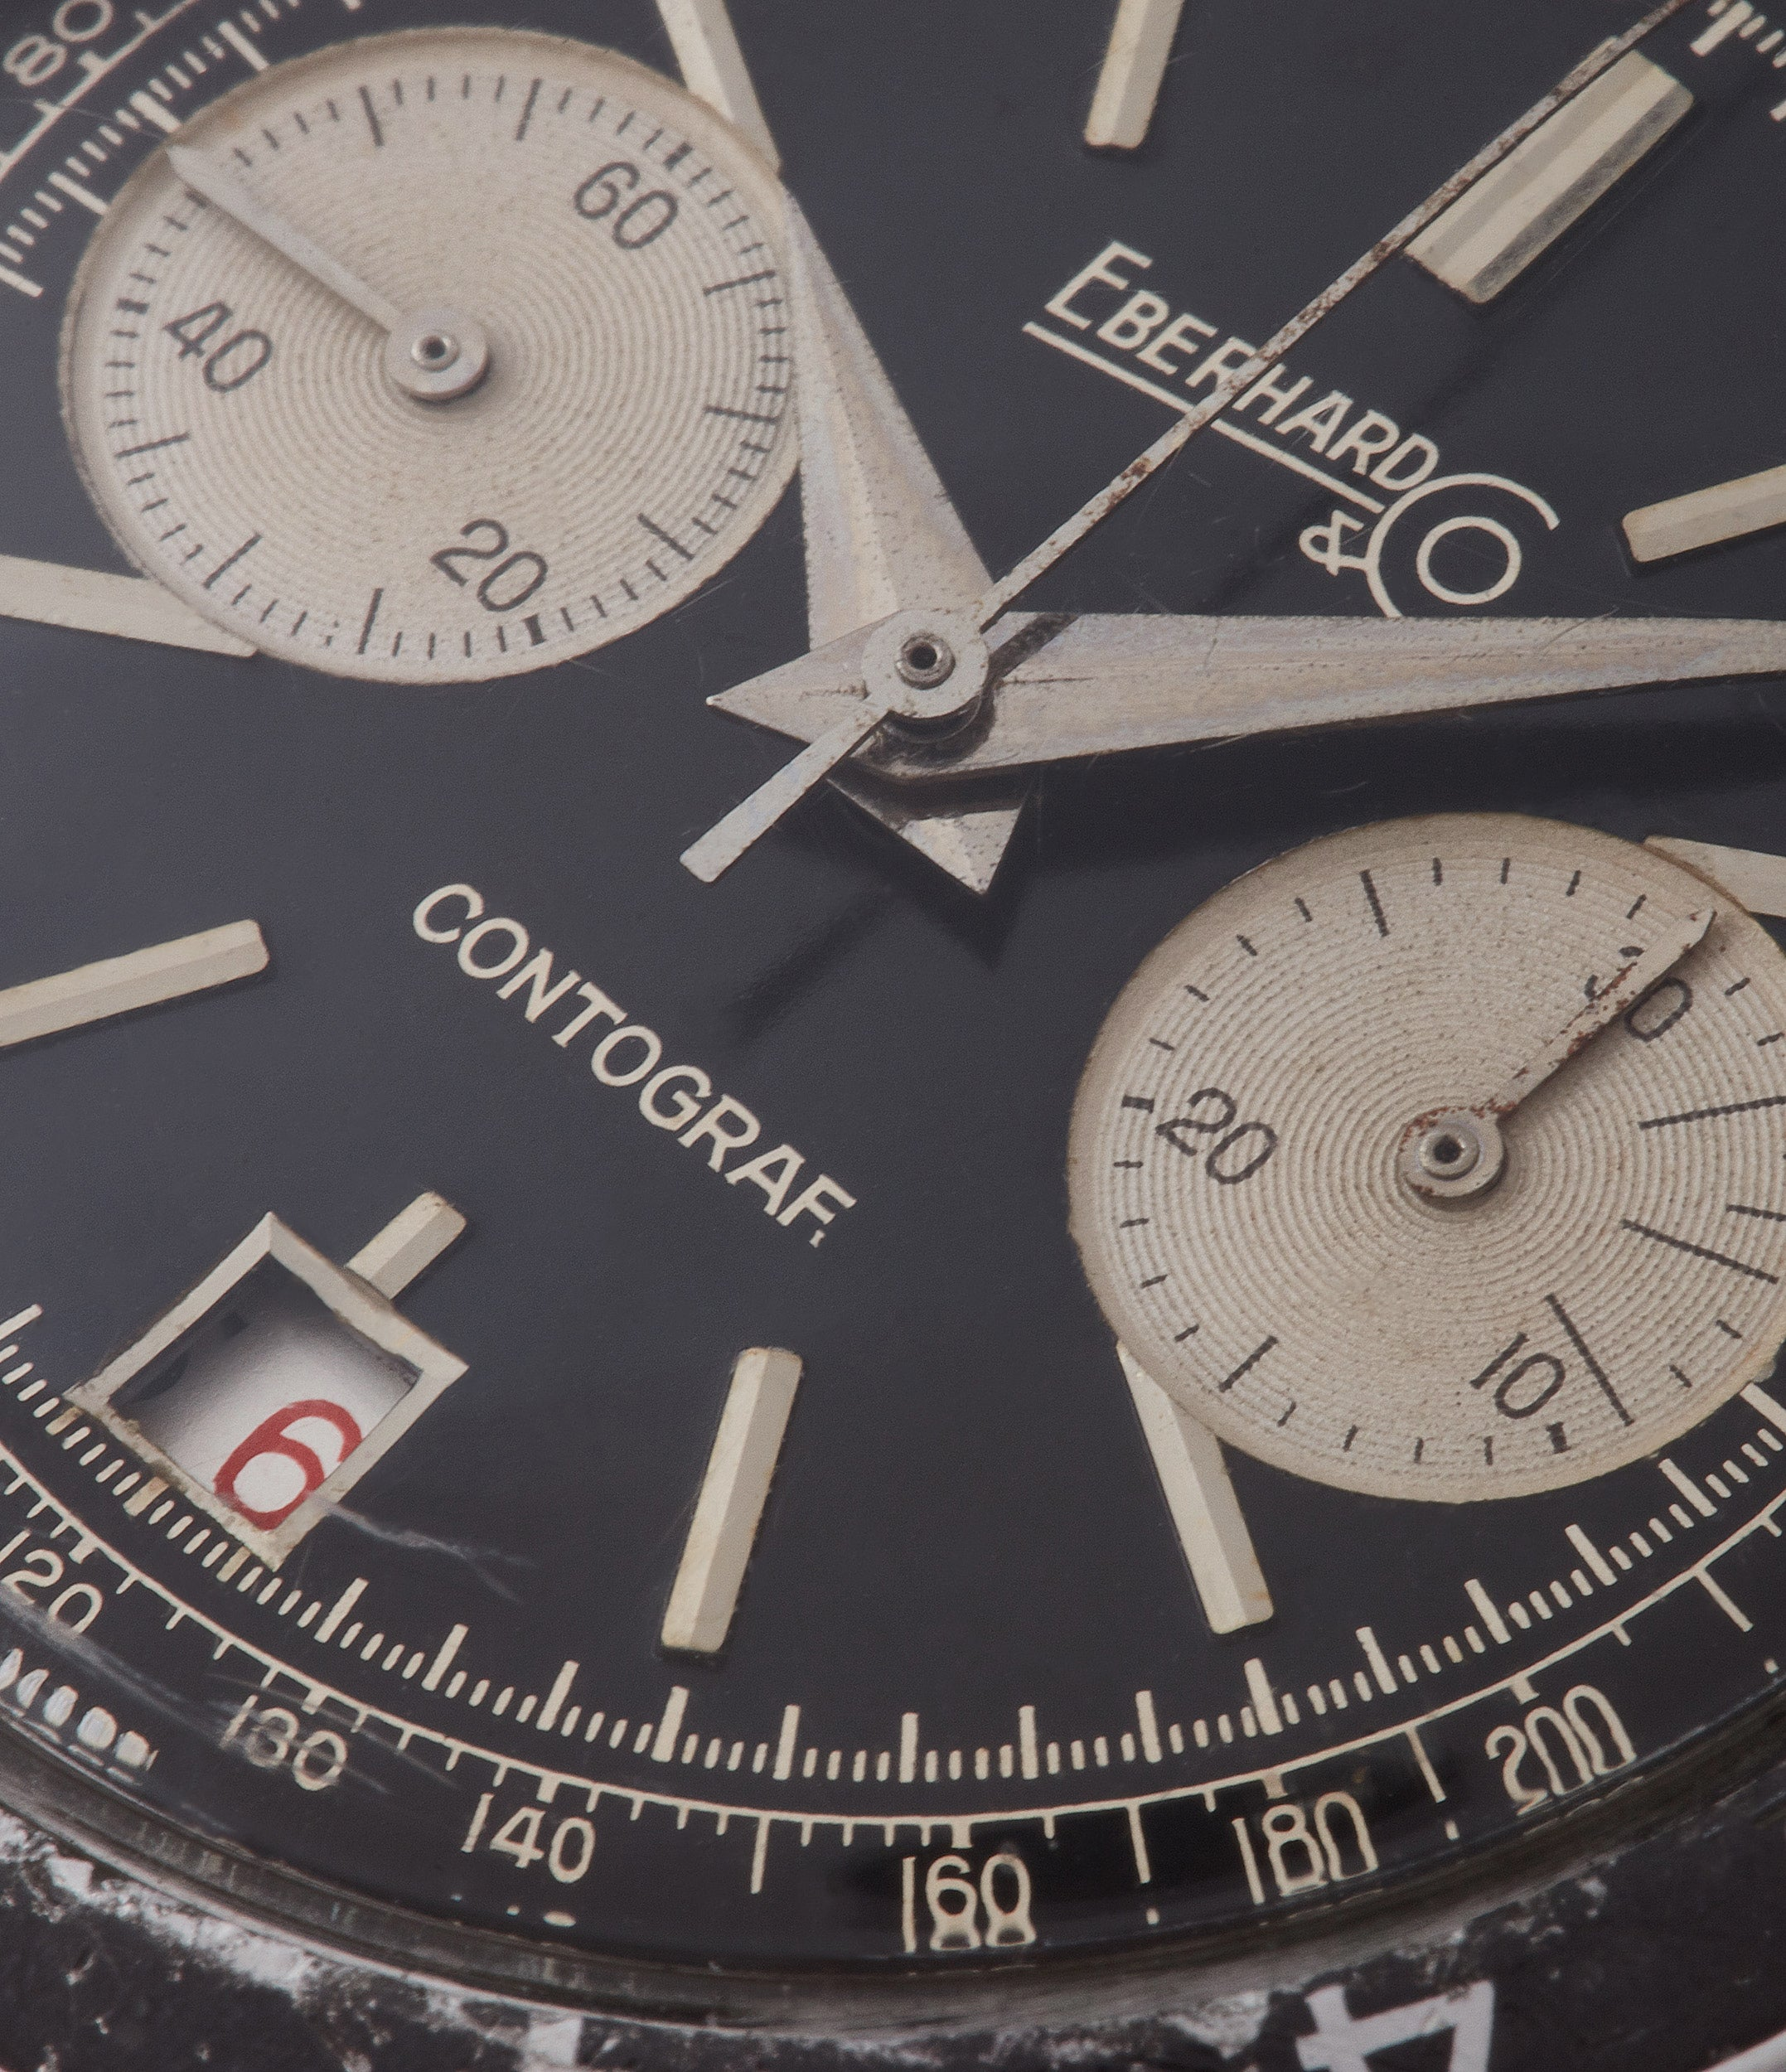 vintage date chronograph watch Eberhard Contograf for sale online at A Collected Man London UK specialist of rare watches